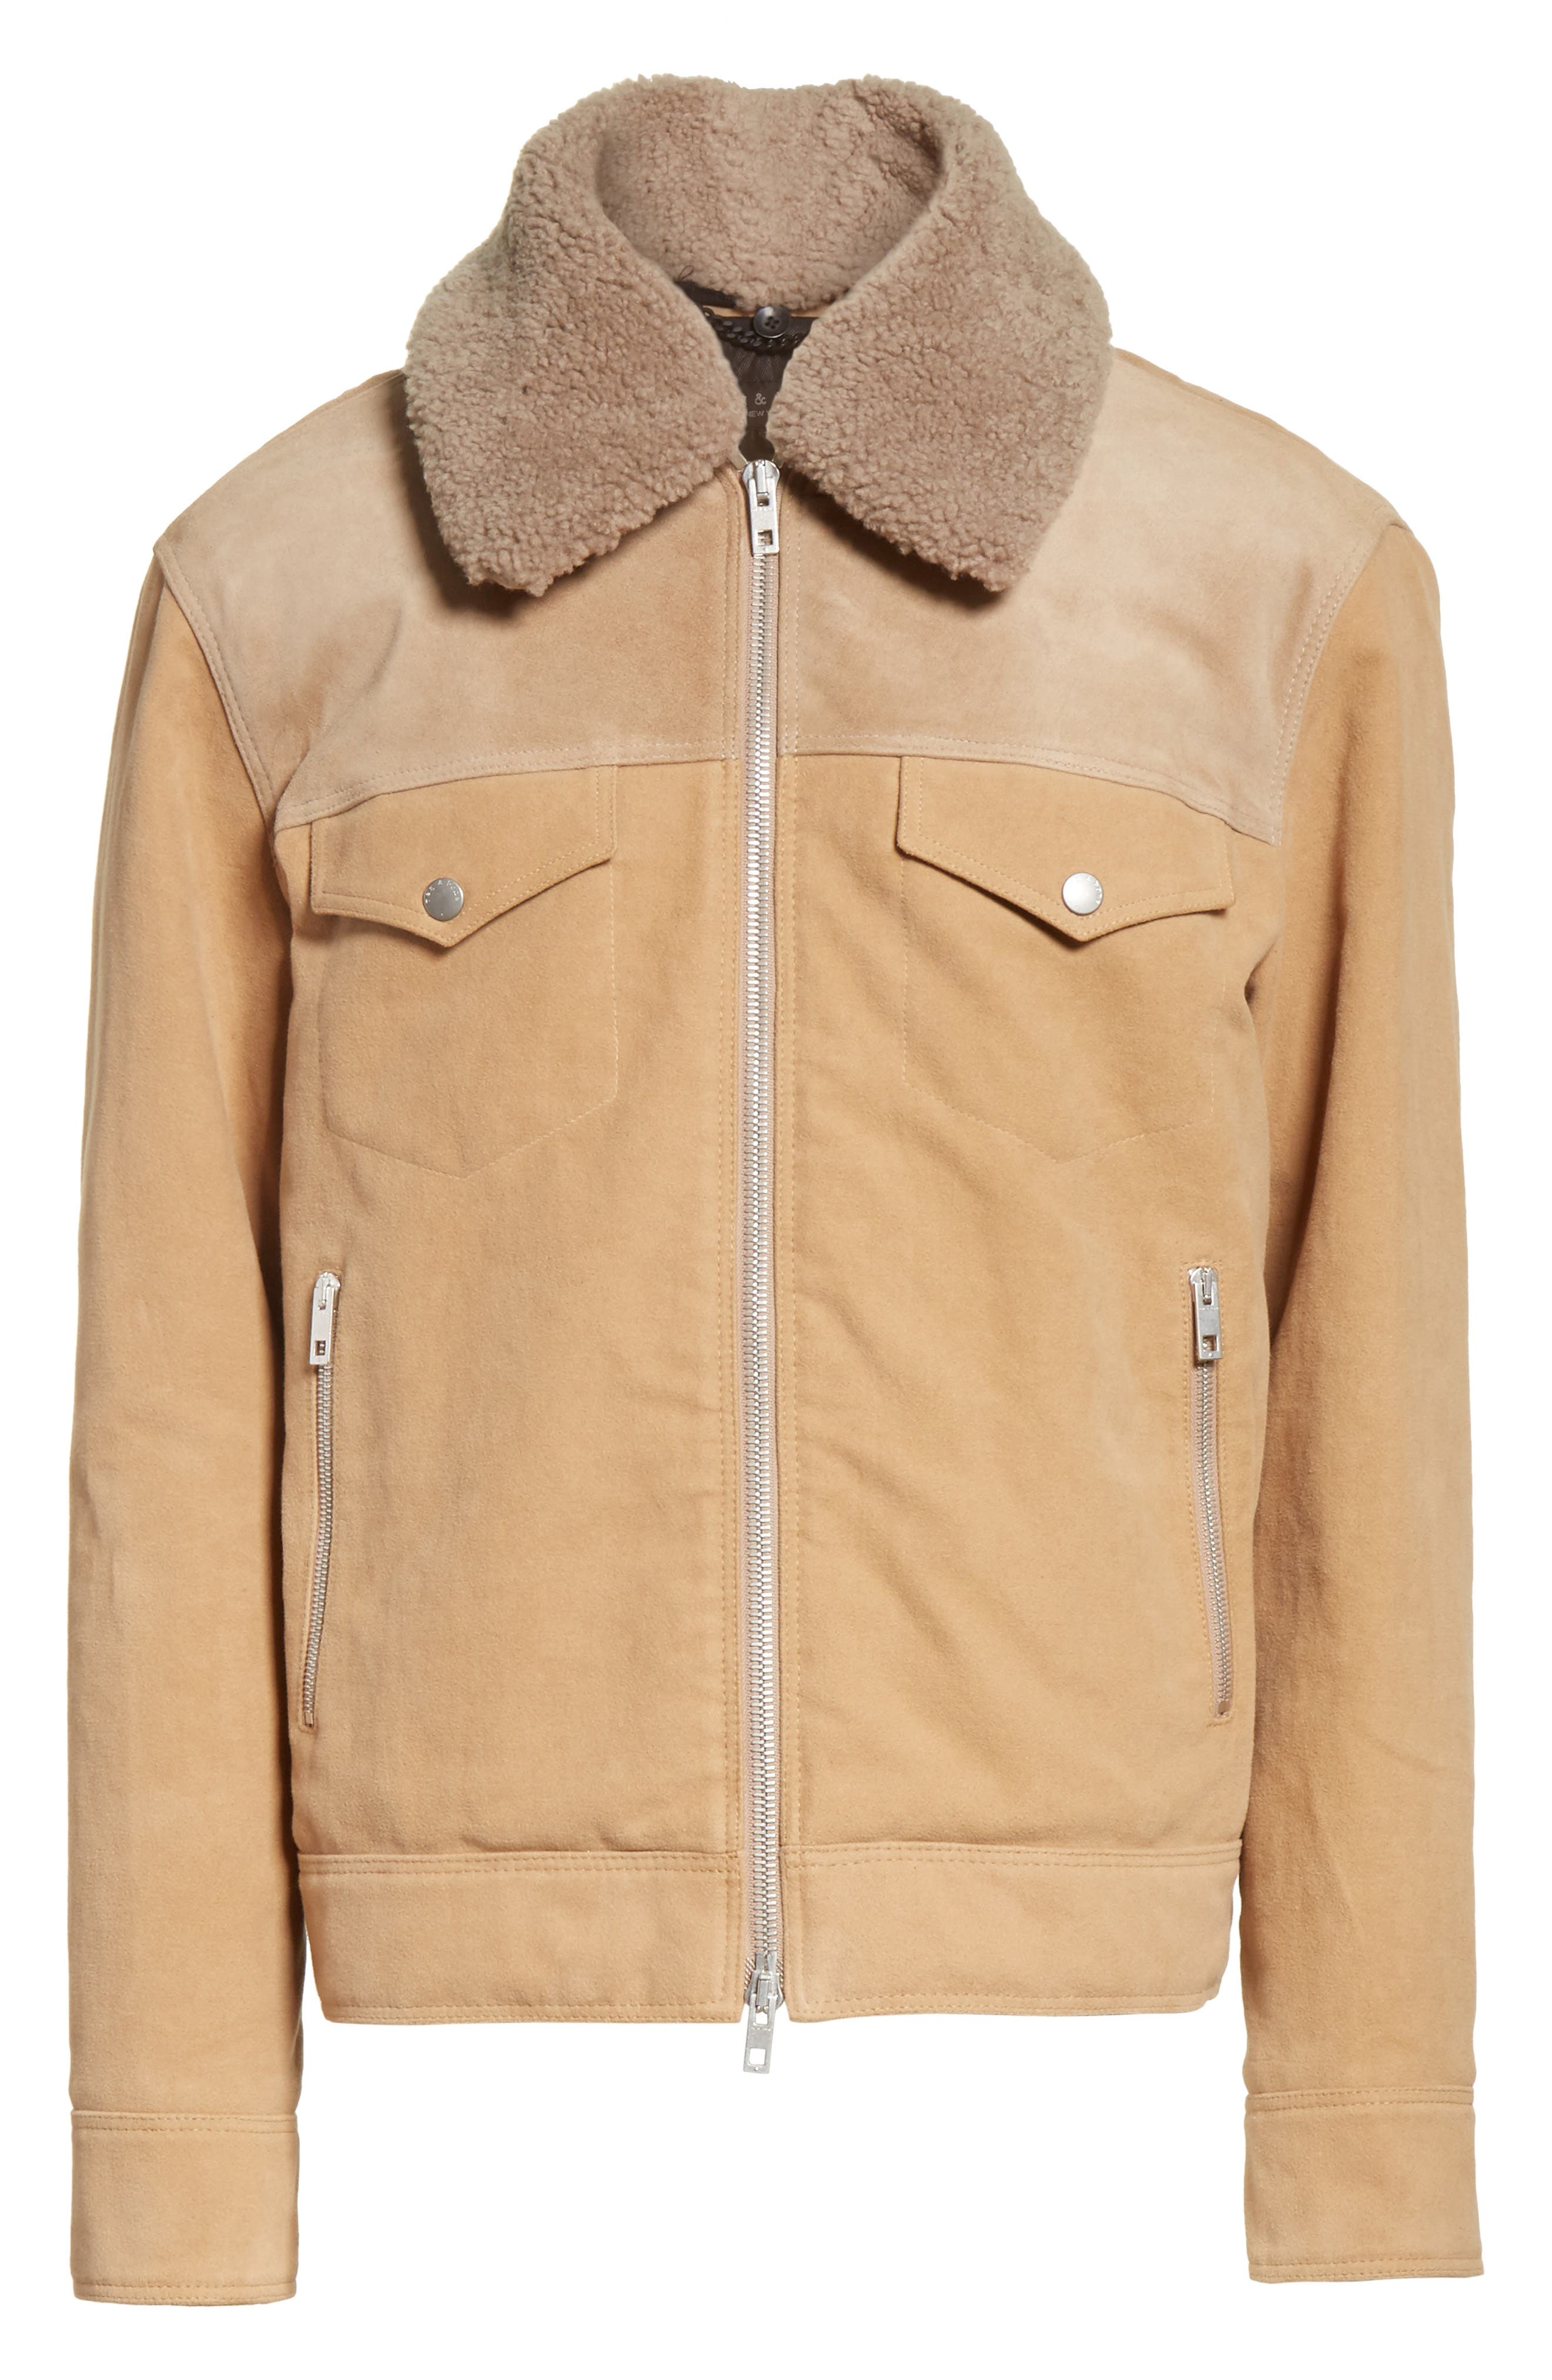 Matthew Work Jacket with Genuine Shearling Collar,                             Alternate thumbnail 5, color,